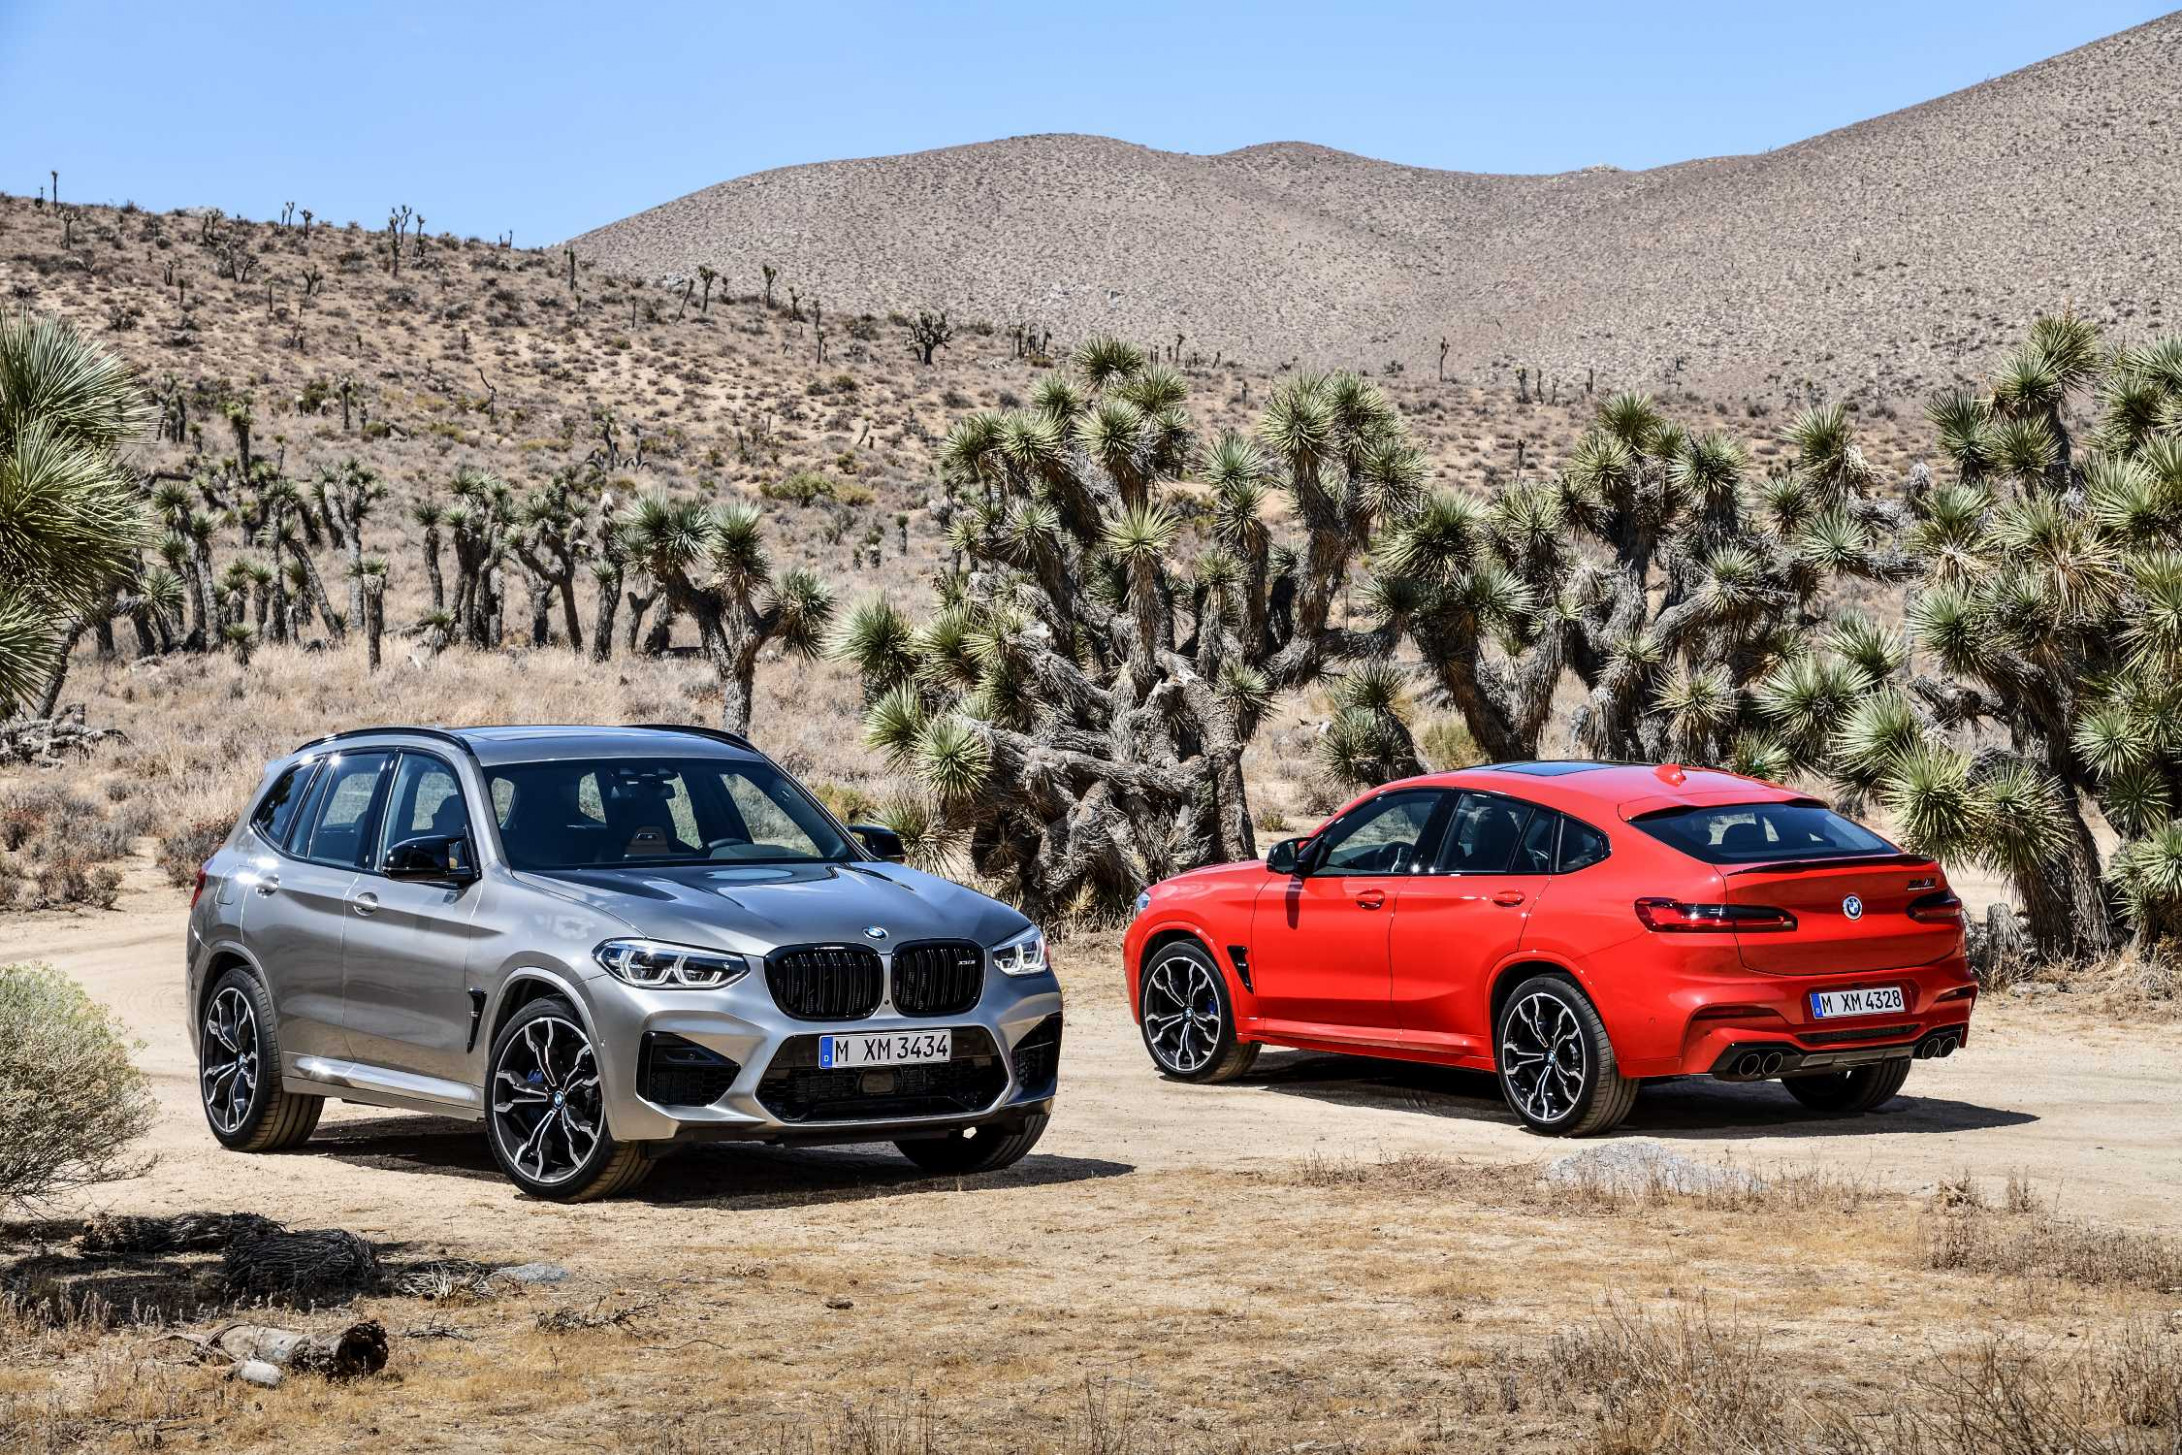 The all-new BMW X10 M and the all-new BMW X10 M